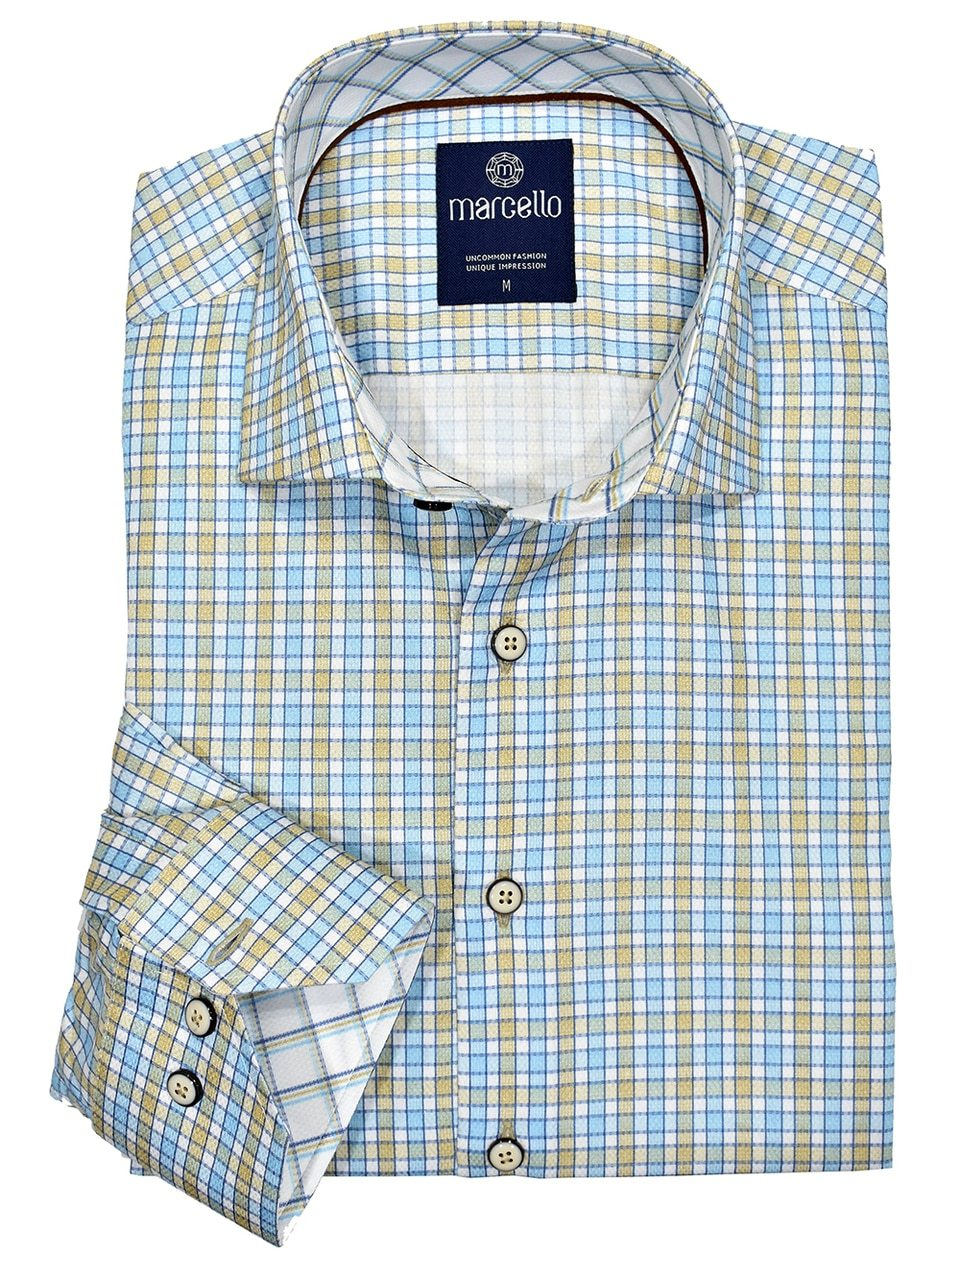 W1035 Buckhead Cotton Plaid - Marcello Sport